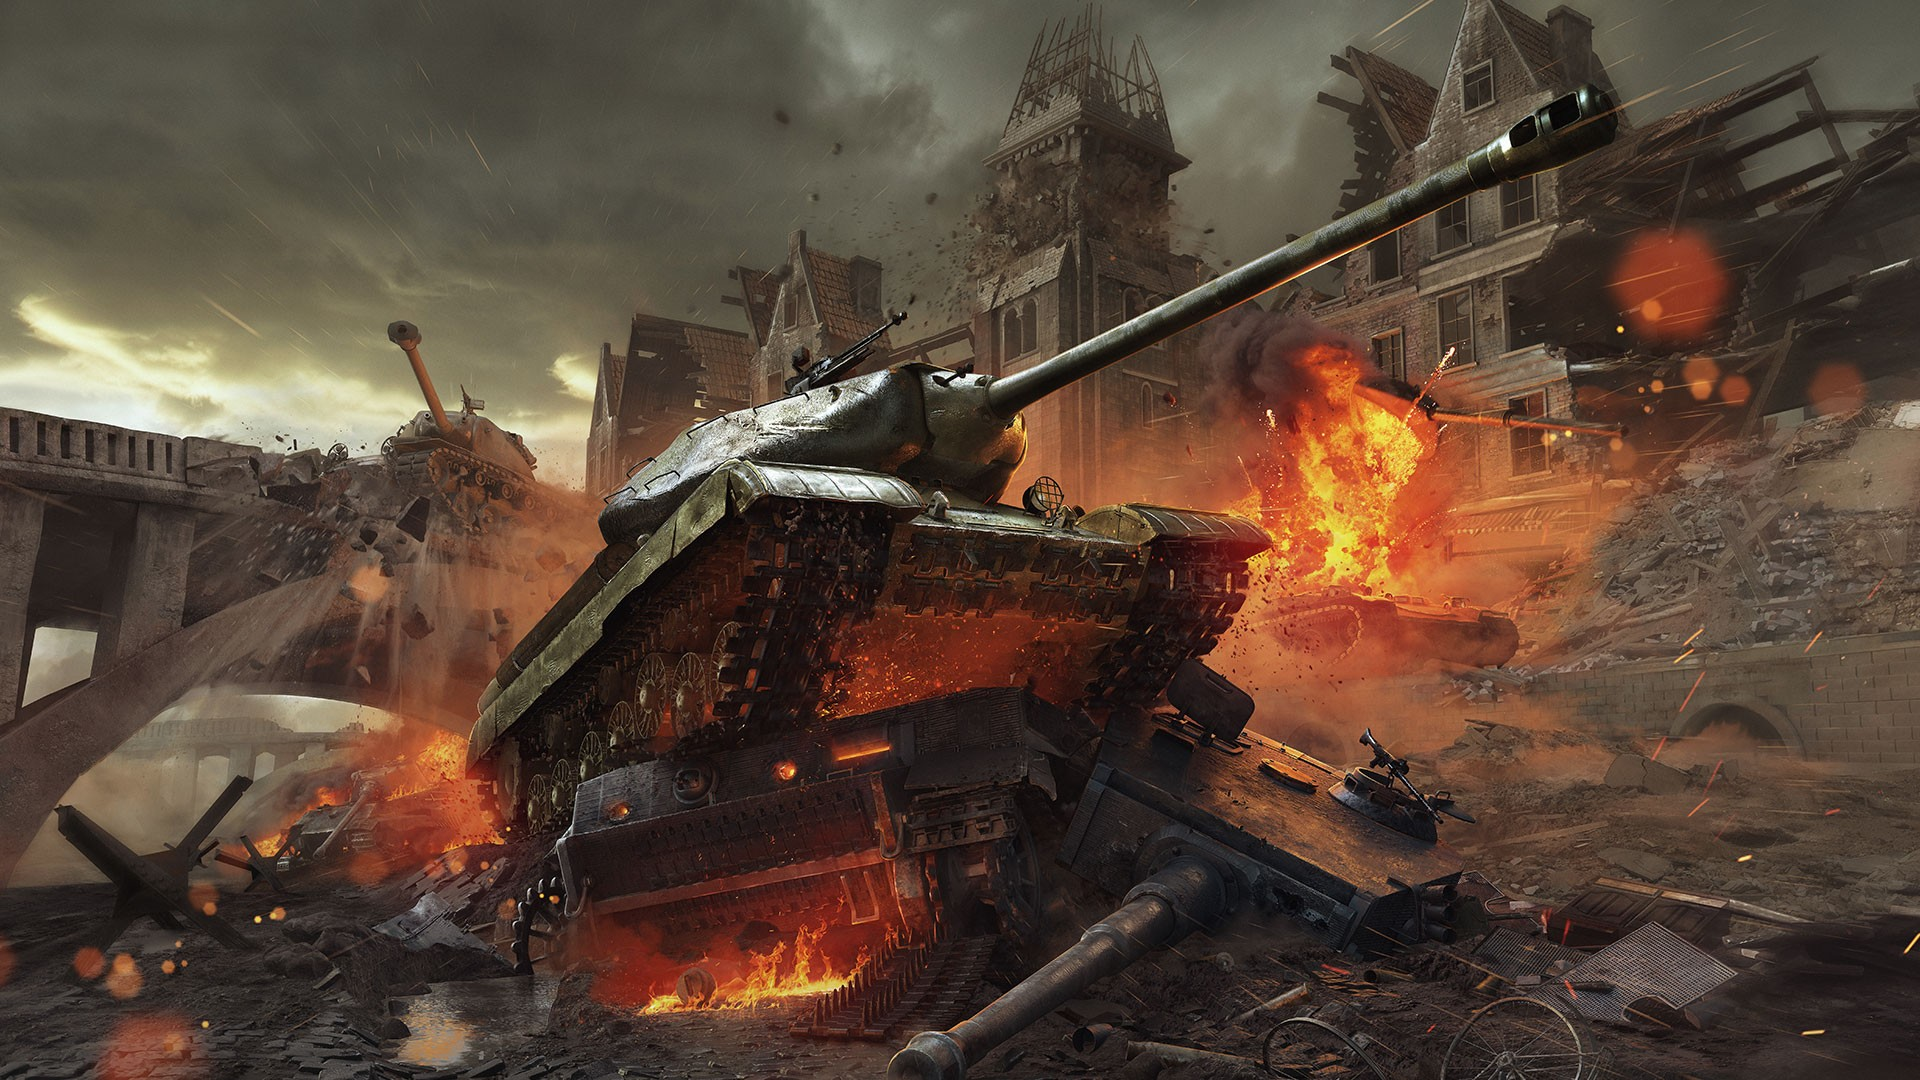 wargaming video games - photo #10